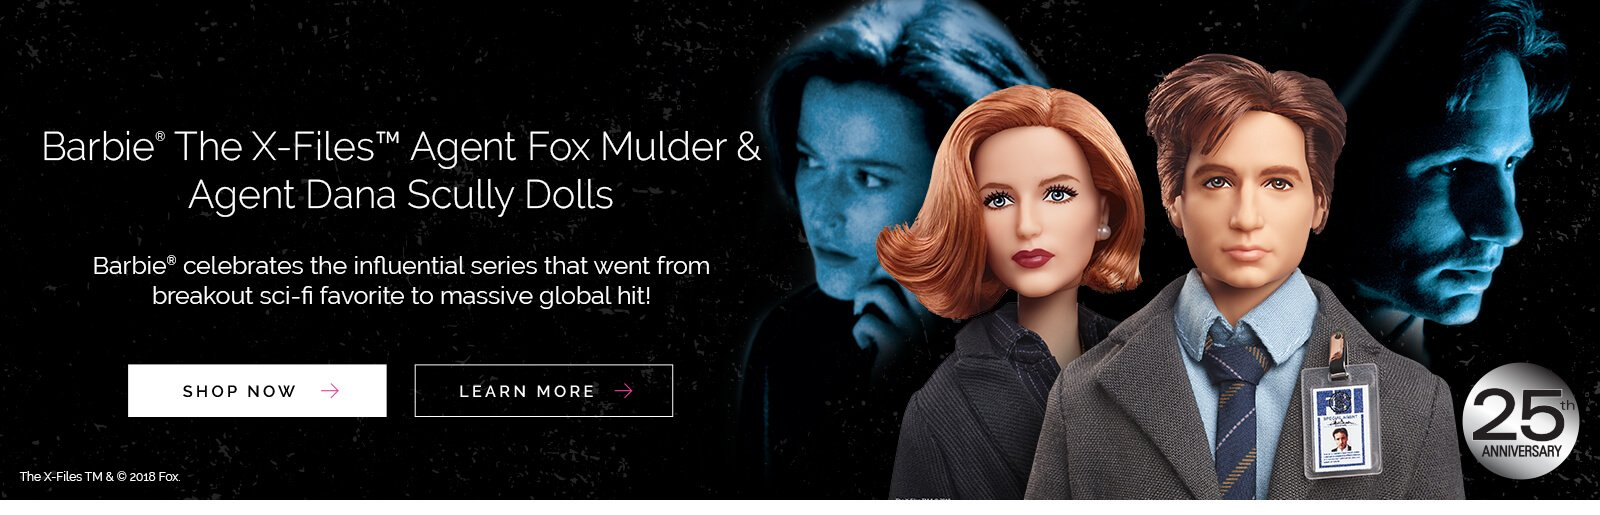 Barbie Celebrates the 25th Anniversary of THE X-FILES!